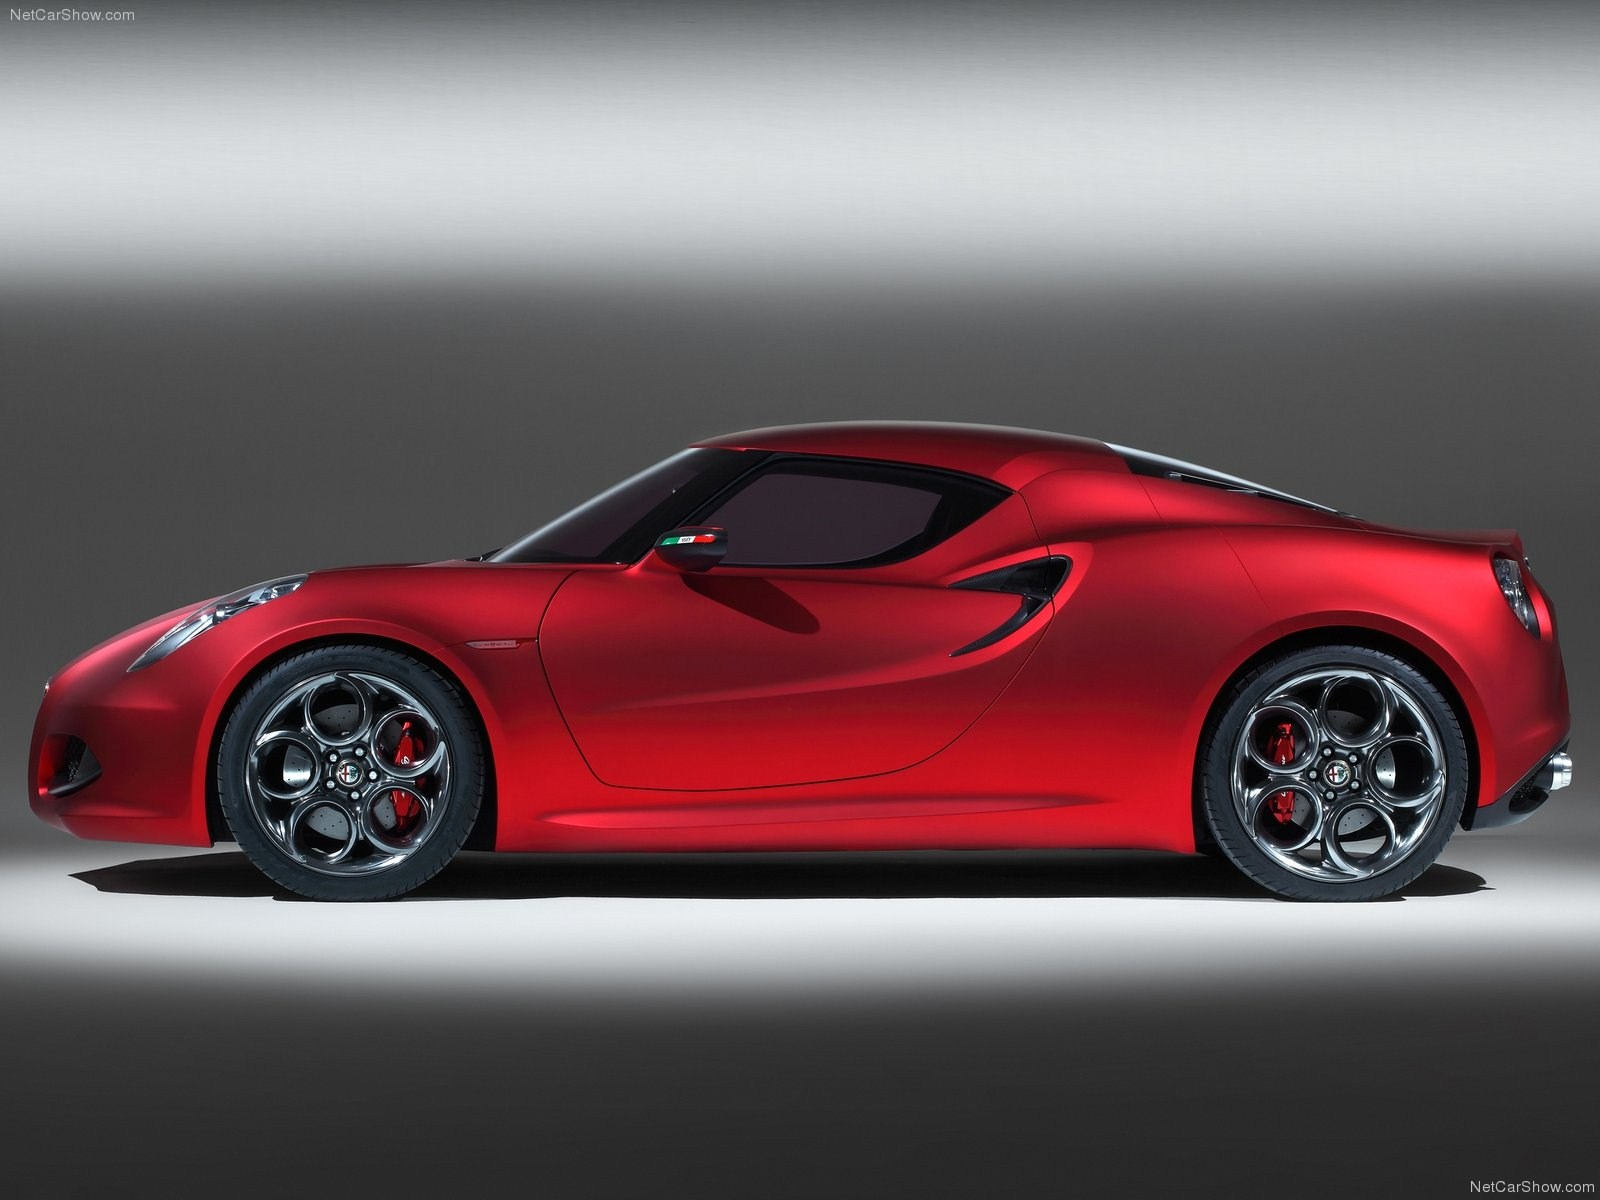 Alfa romeo 4c coupe price in india